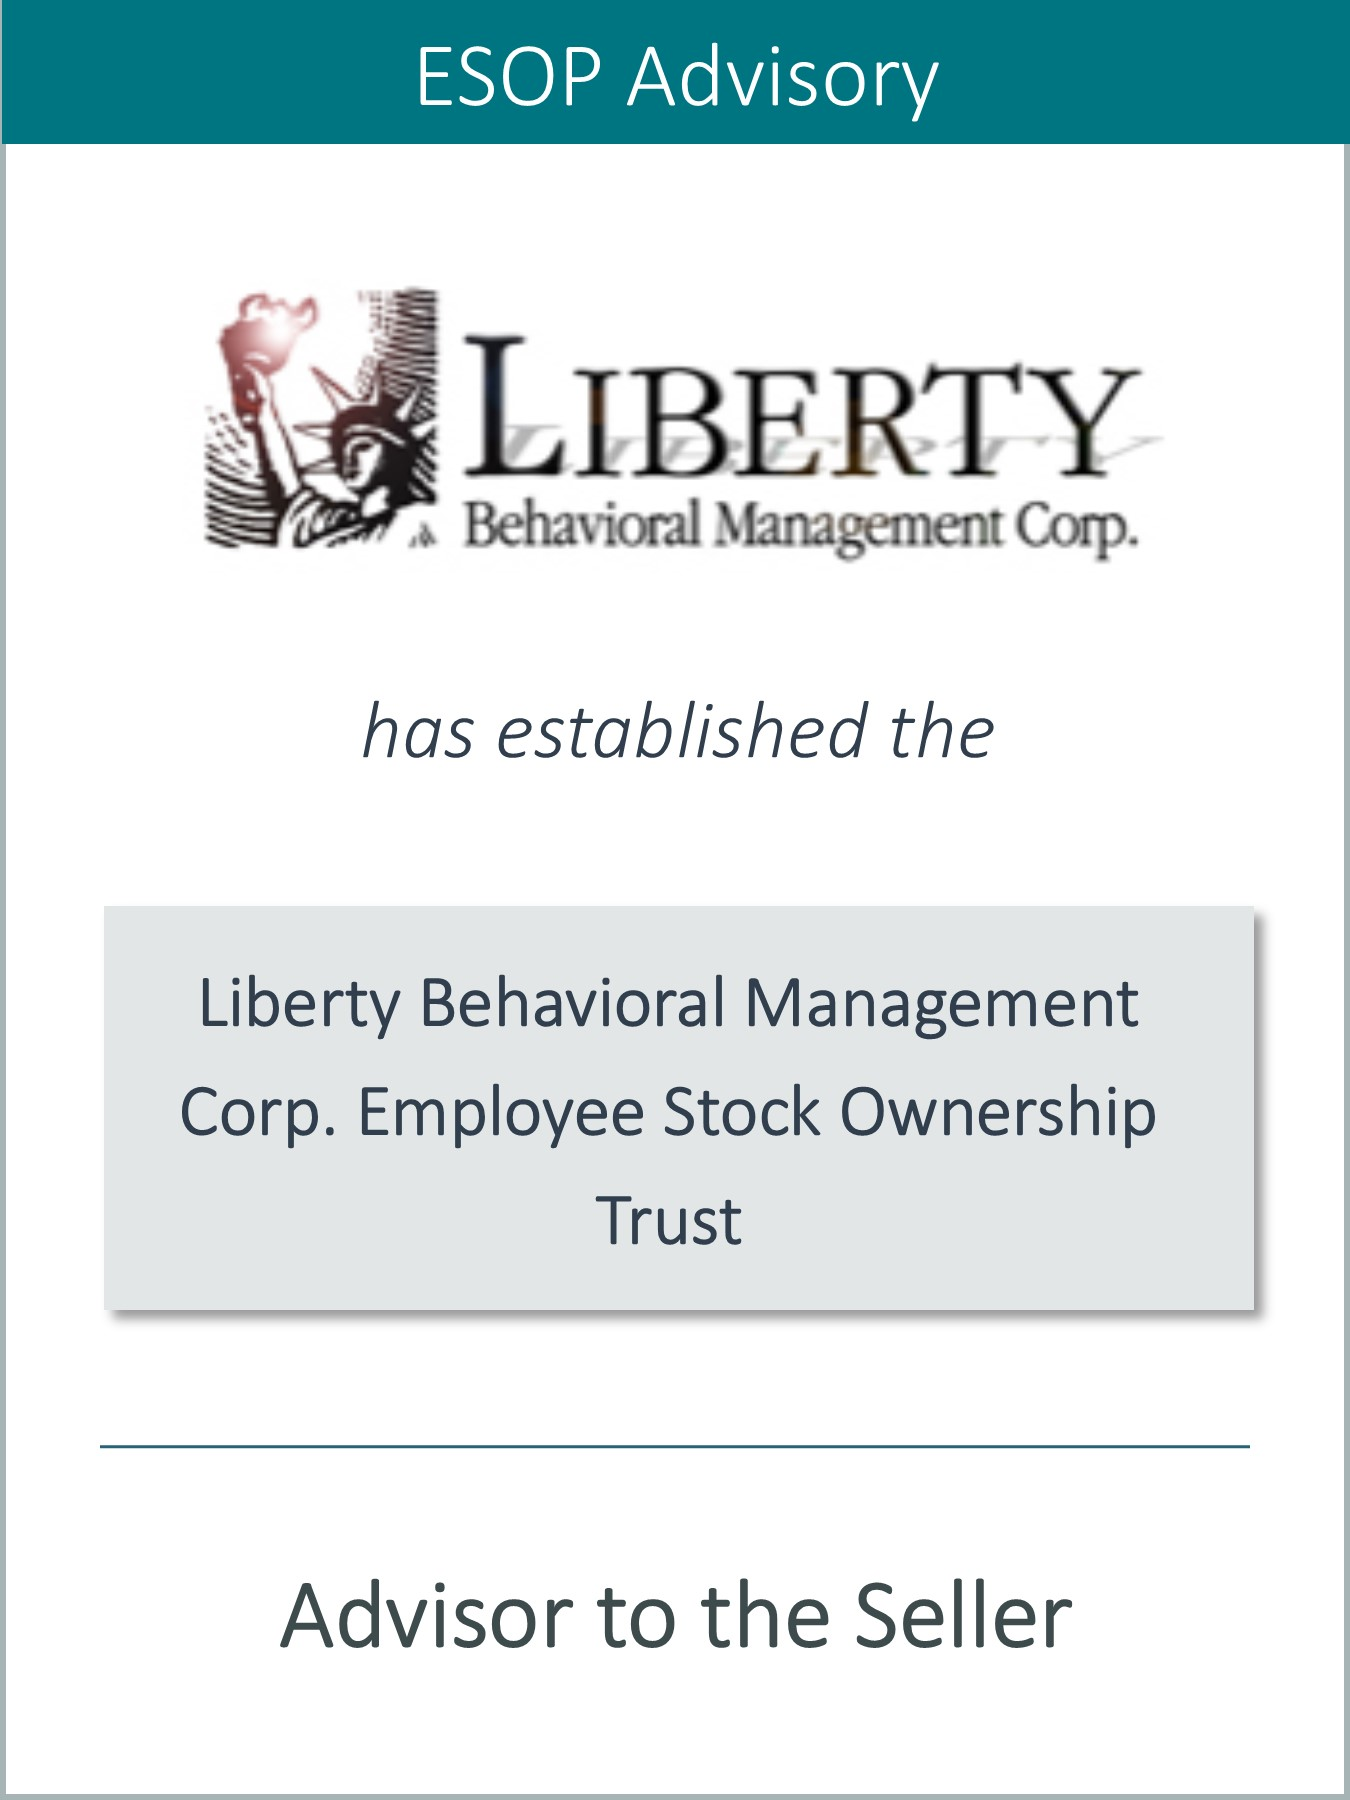 PRAIRIE IS PLEASED TO ANNOUNCE THE SUCCESSFUL SALE OF LIBERTY BEHAVIORAL MANAGEMENT GROUP TO AN ESOP